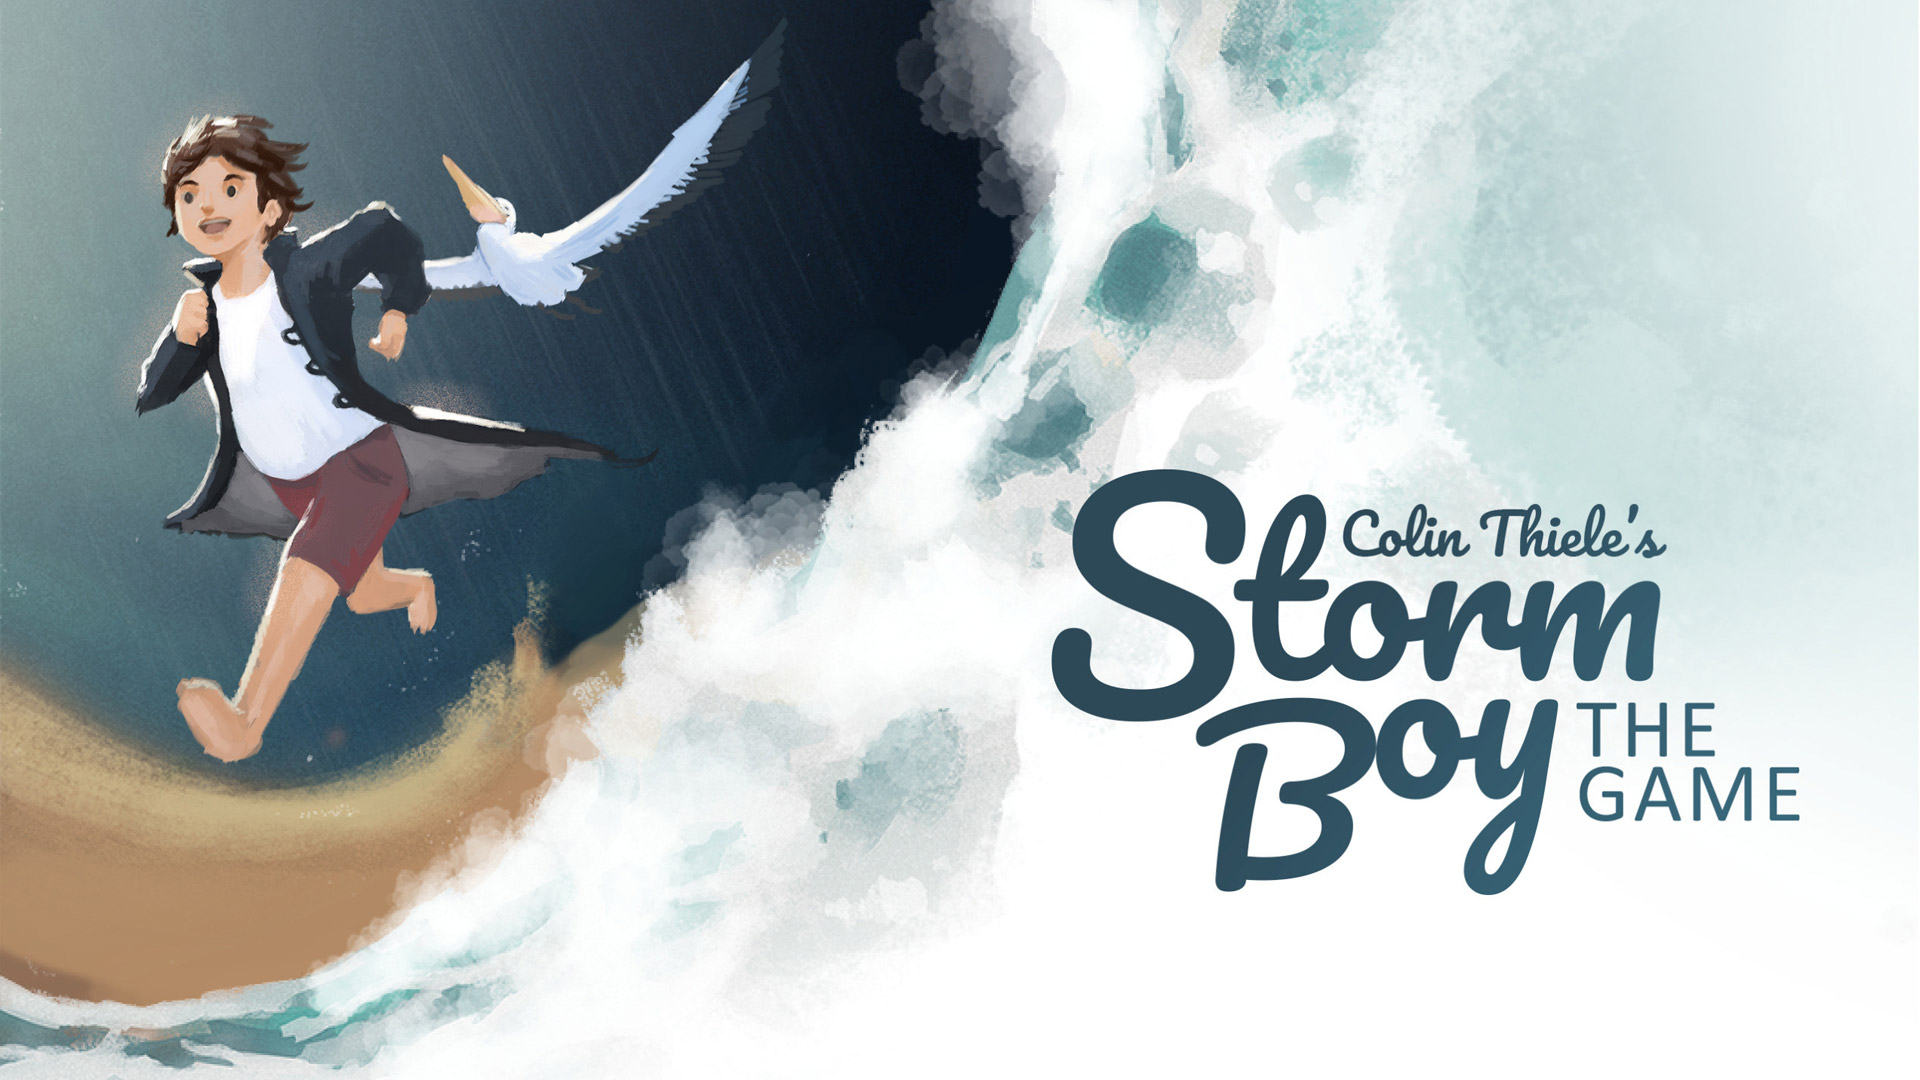 Free Storm Boy: The Game Wallpaper in 1920x1080